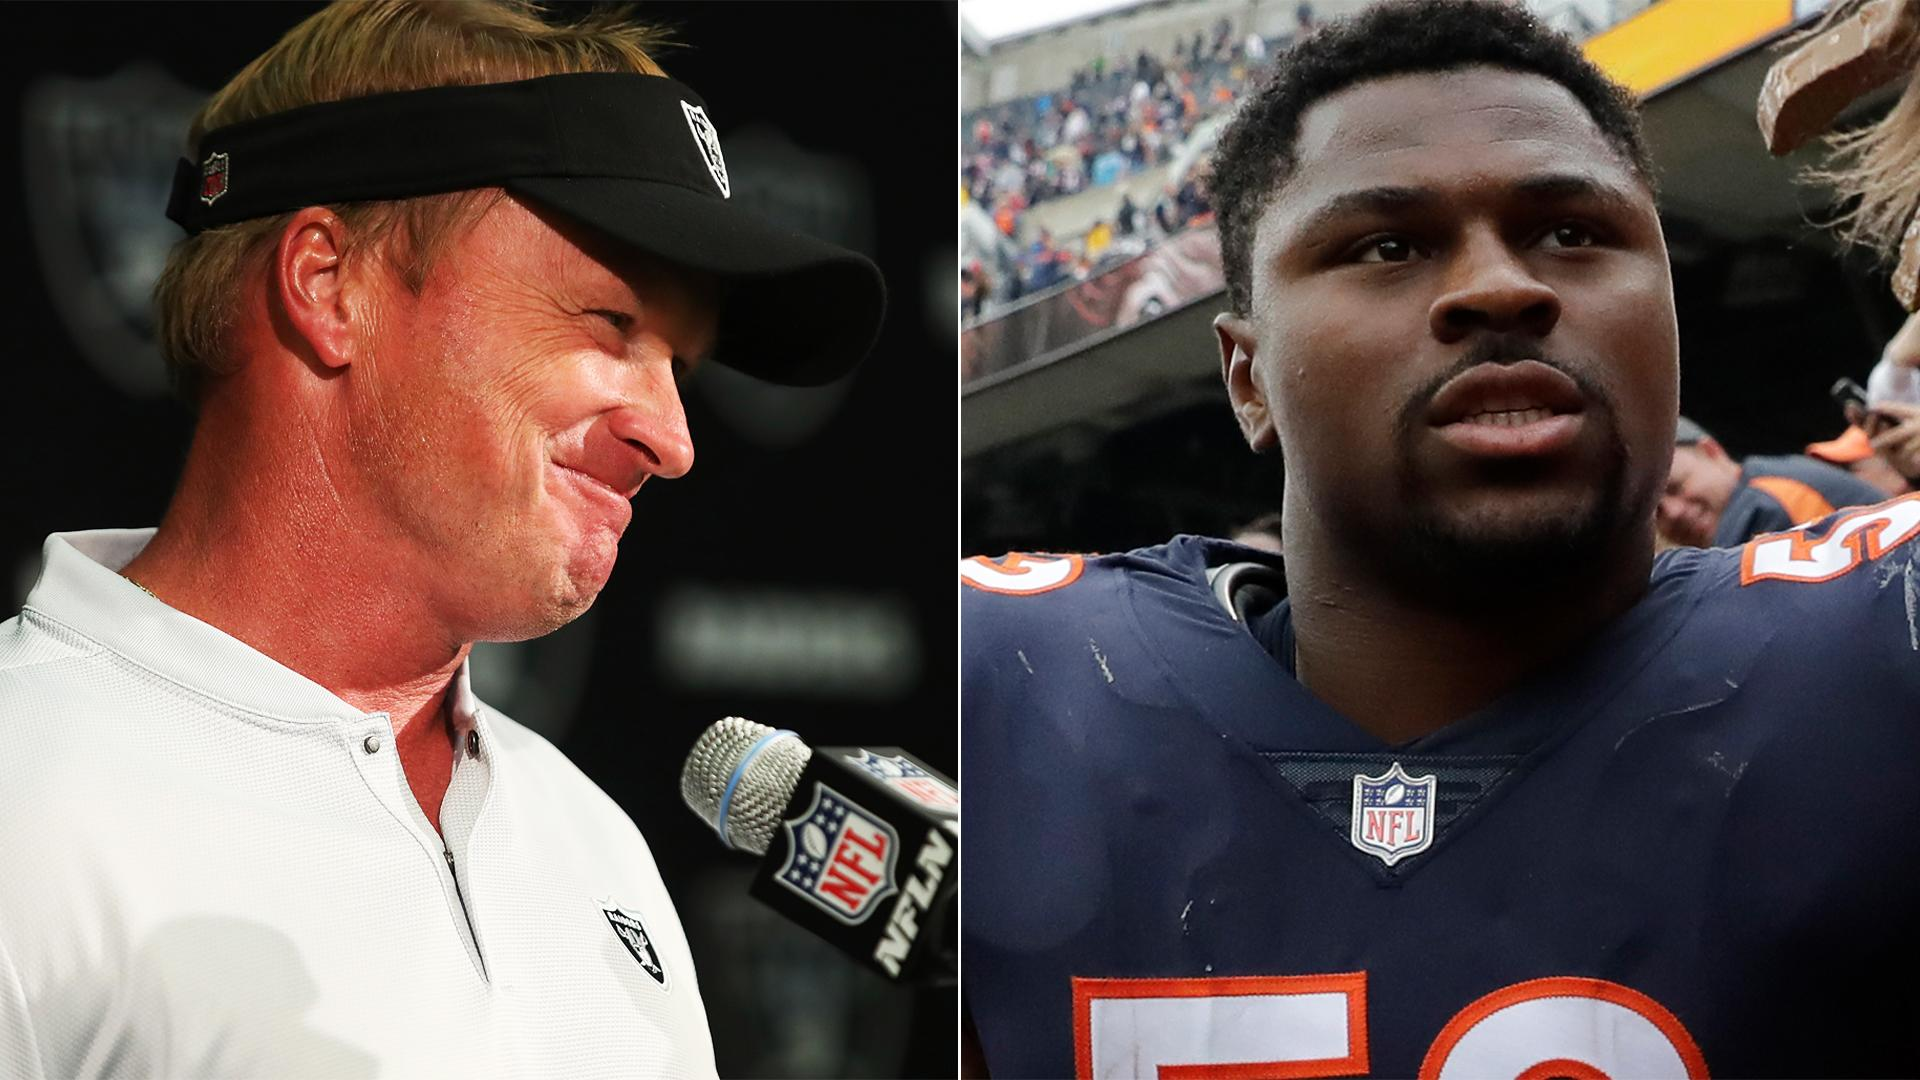 Jon Gruden reacts to latest Khalil Mack strip sack: 'Are you kidding me?'